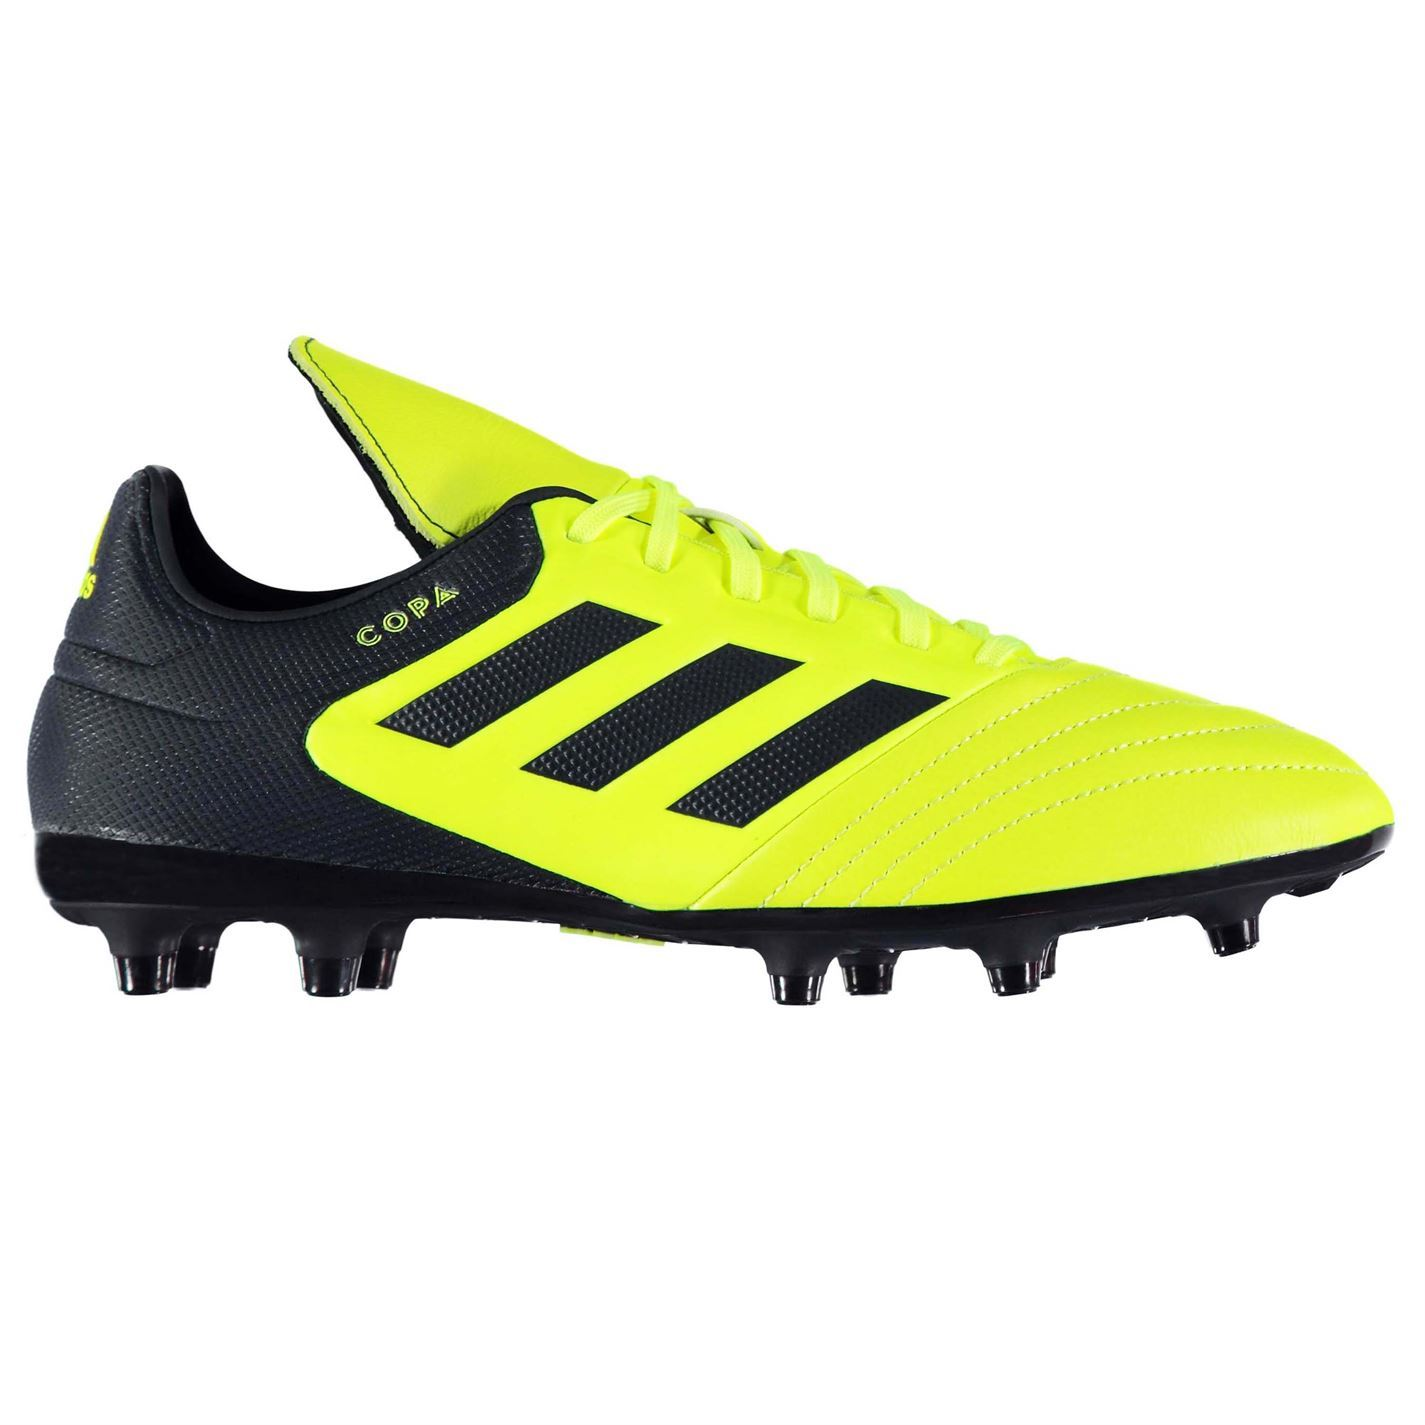 fd5749153c5b ... adidas Copa 17.3 FG Firm Ground Football Boots Mens Yellow Soccer Shoes  Cleats ...